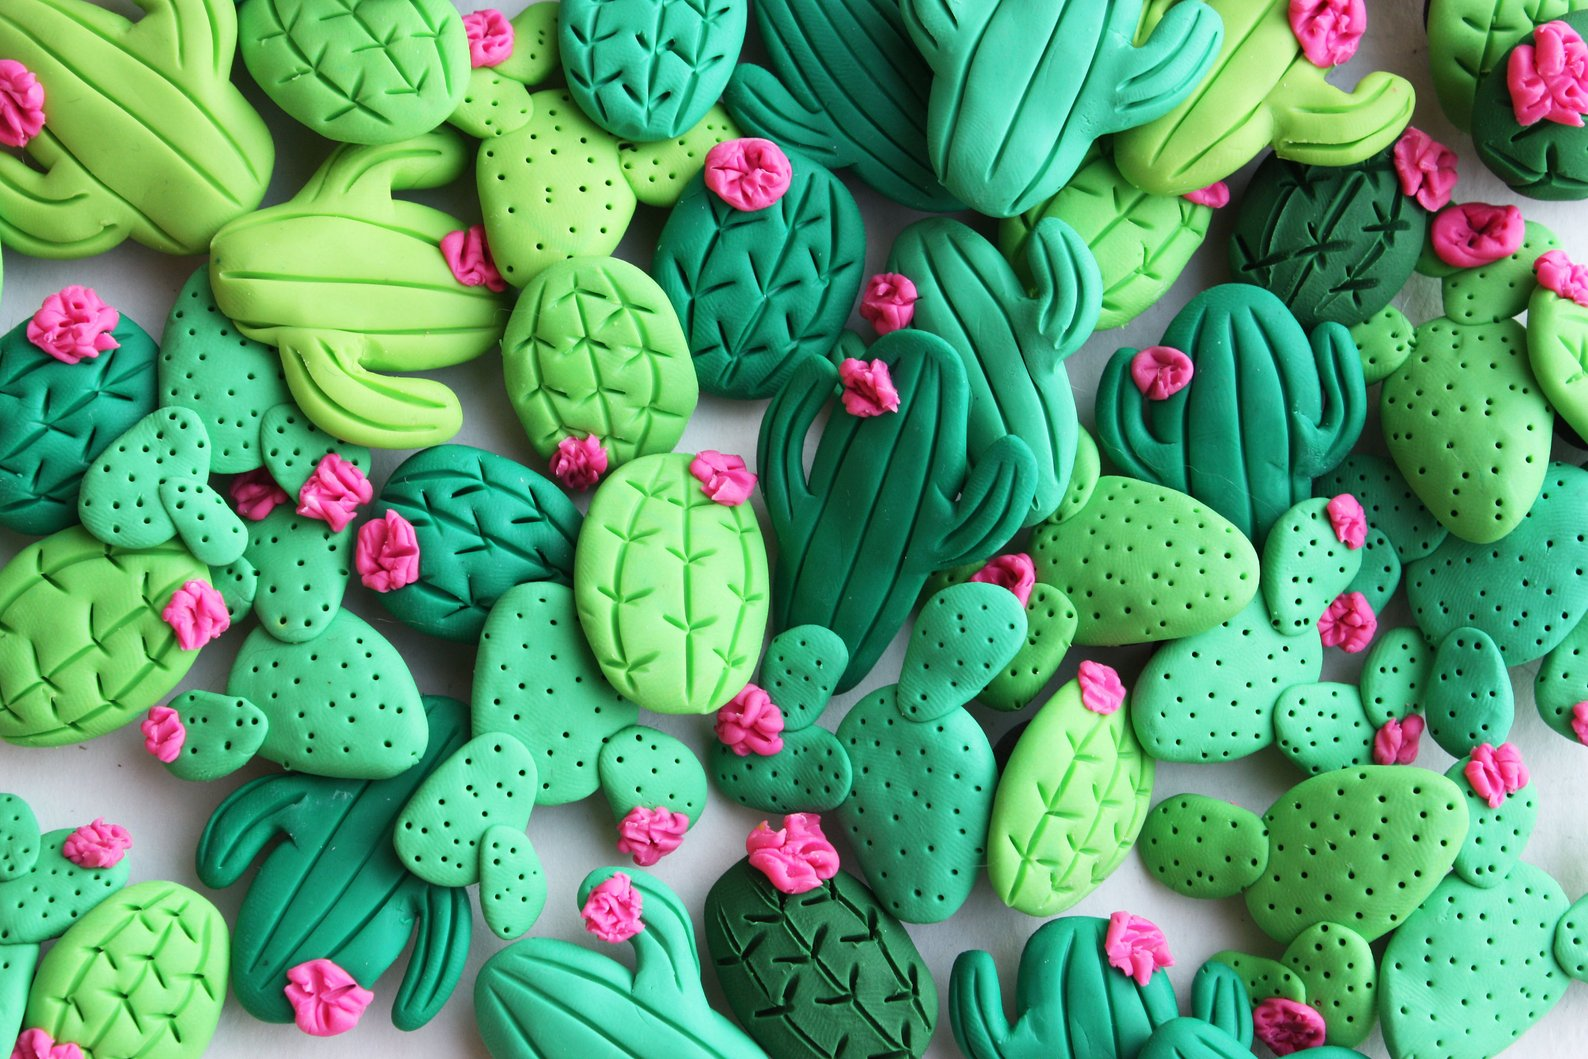 Cactus Refrigerator Magnets By Mkaybrinker